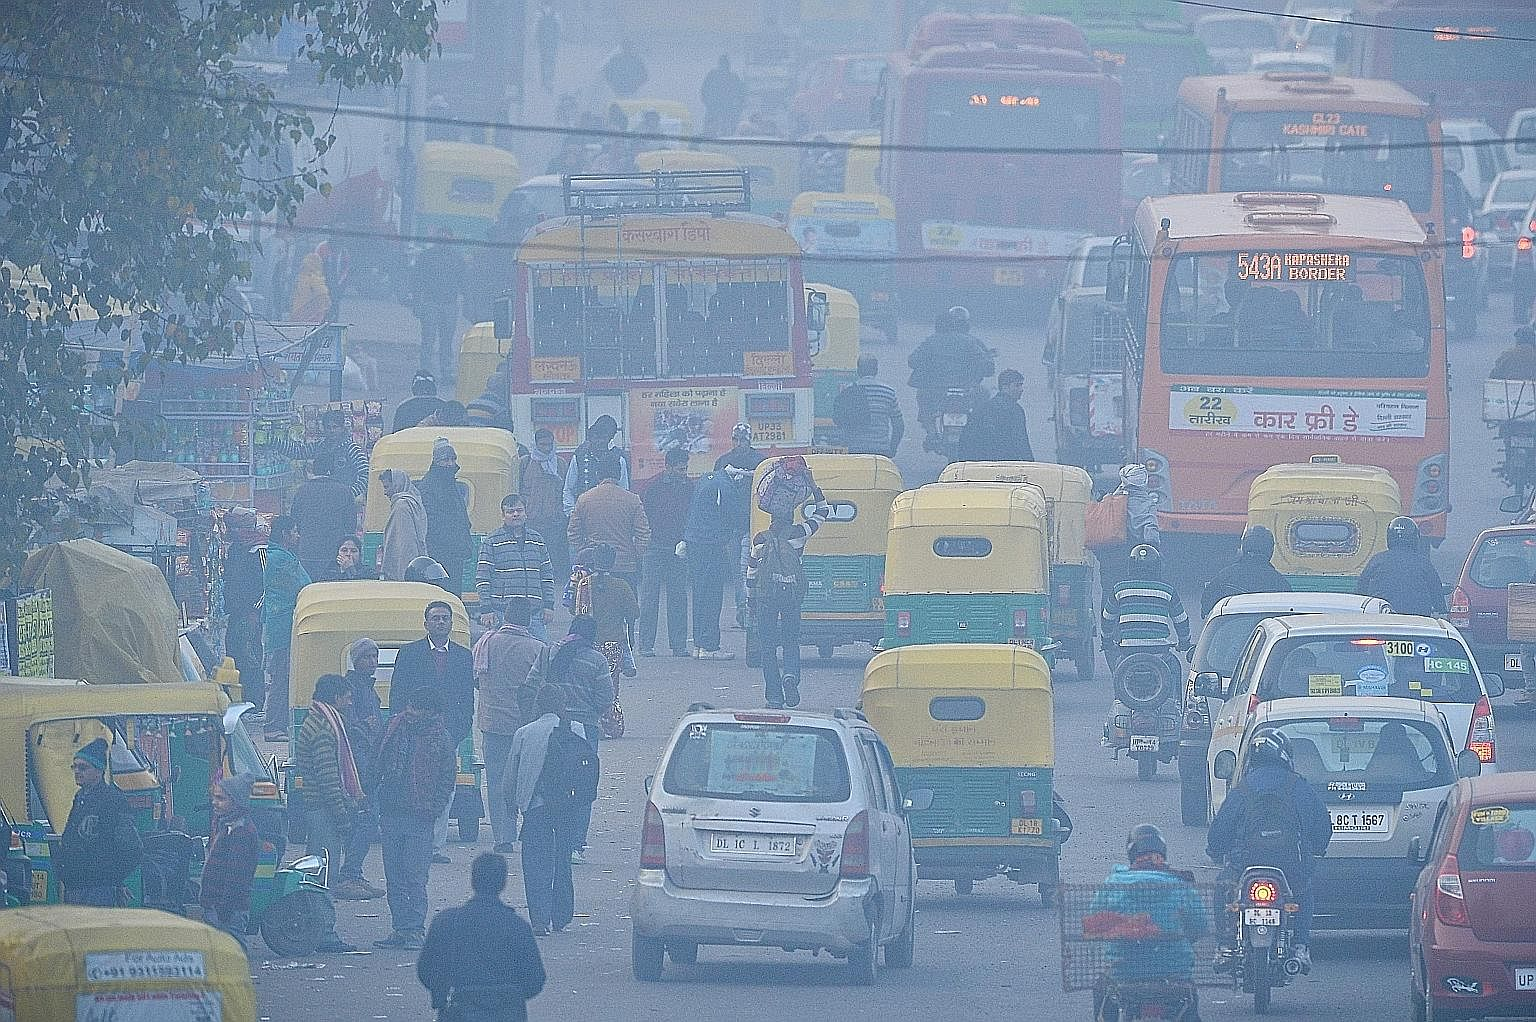 Commuters travelling on a polluted road near a bus terminus in New Delhi.